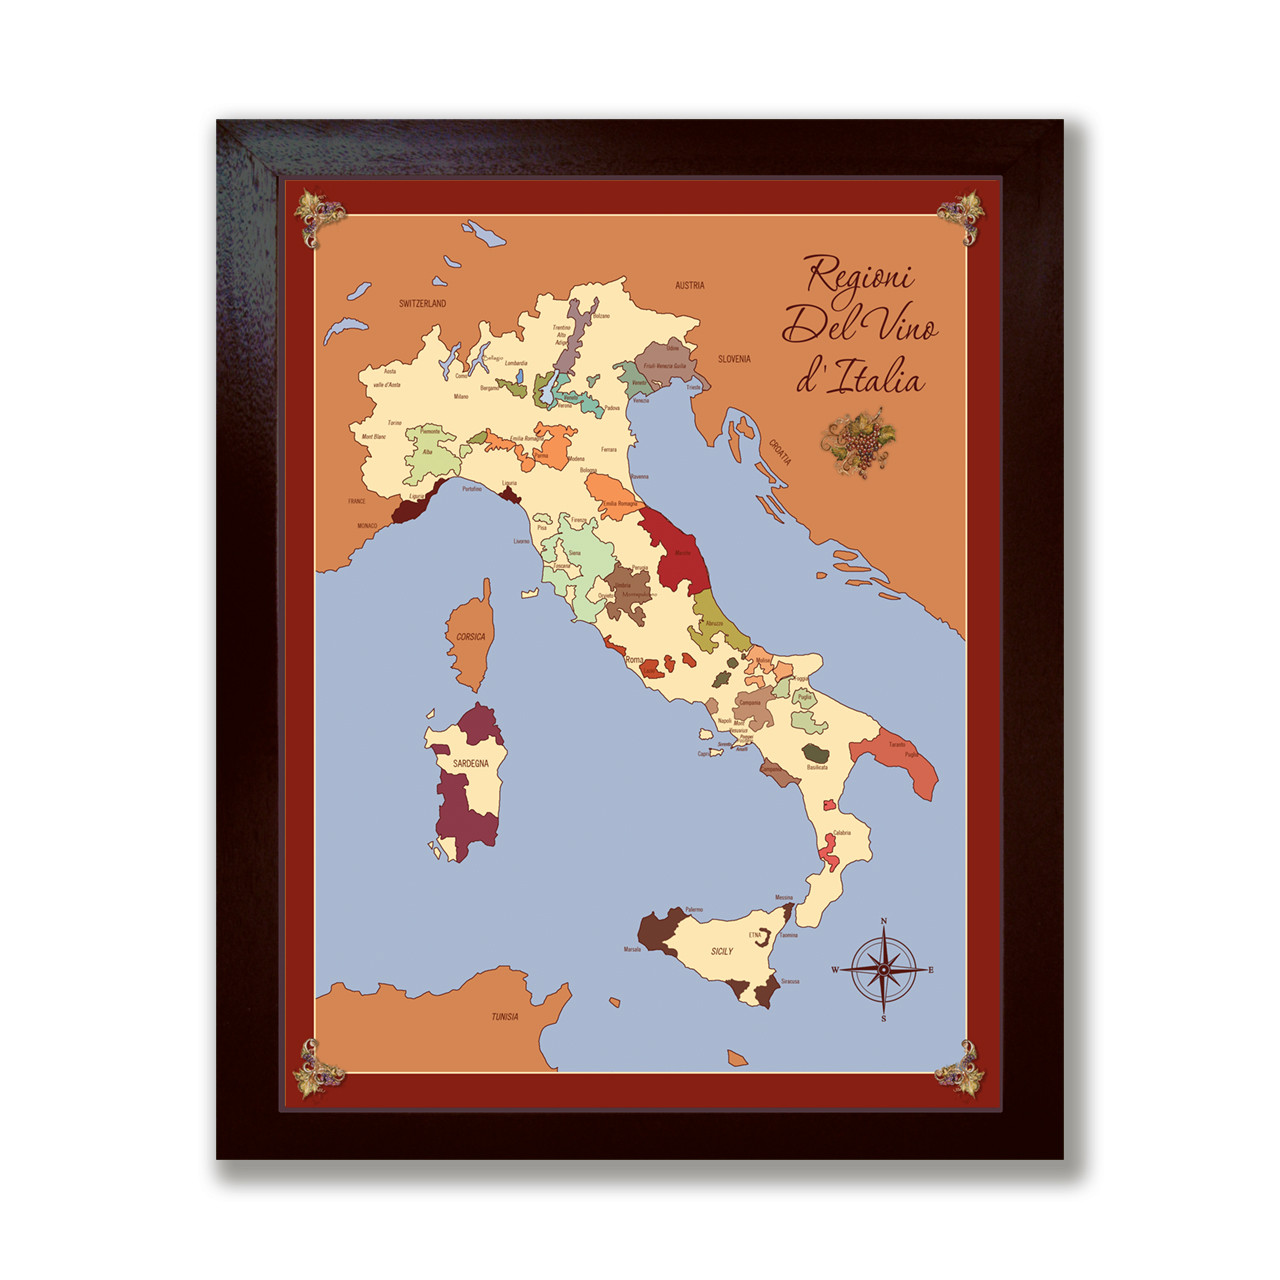 Italy wine region map canvas with dark espresso wood frame